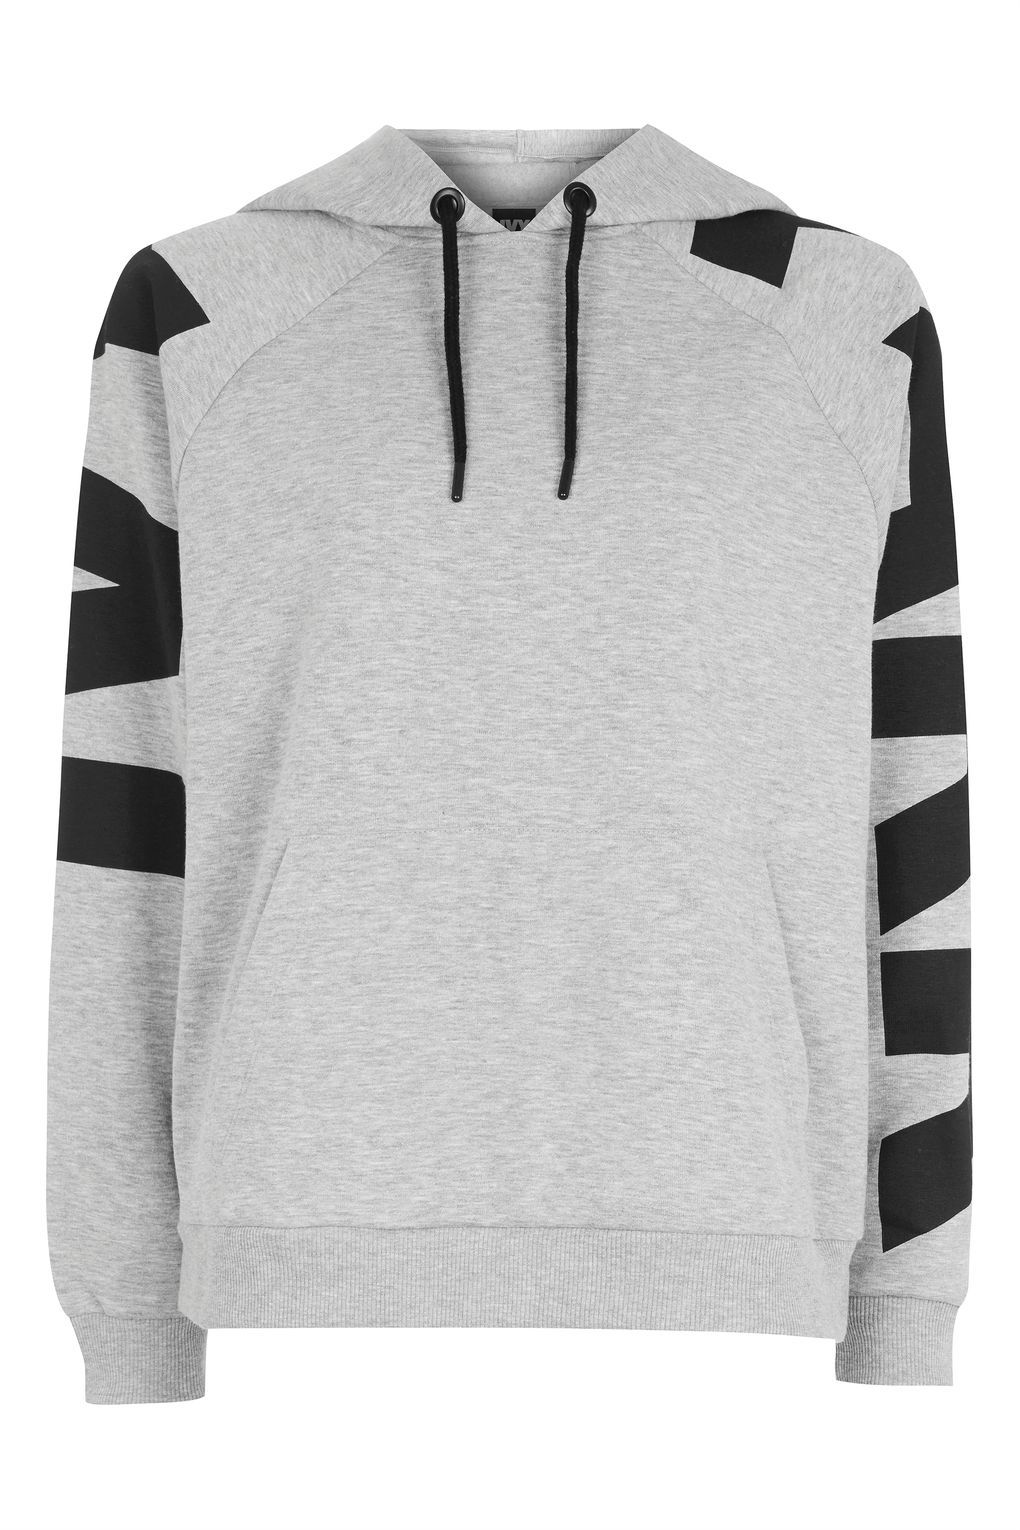 e049bcea Logo Sleeve Hoodie by Ivy Park - Ivy Park - Clothing   Jackets and ...